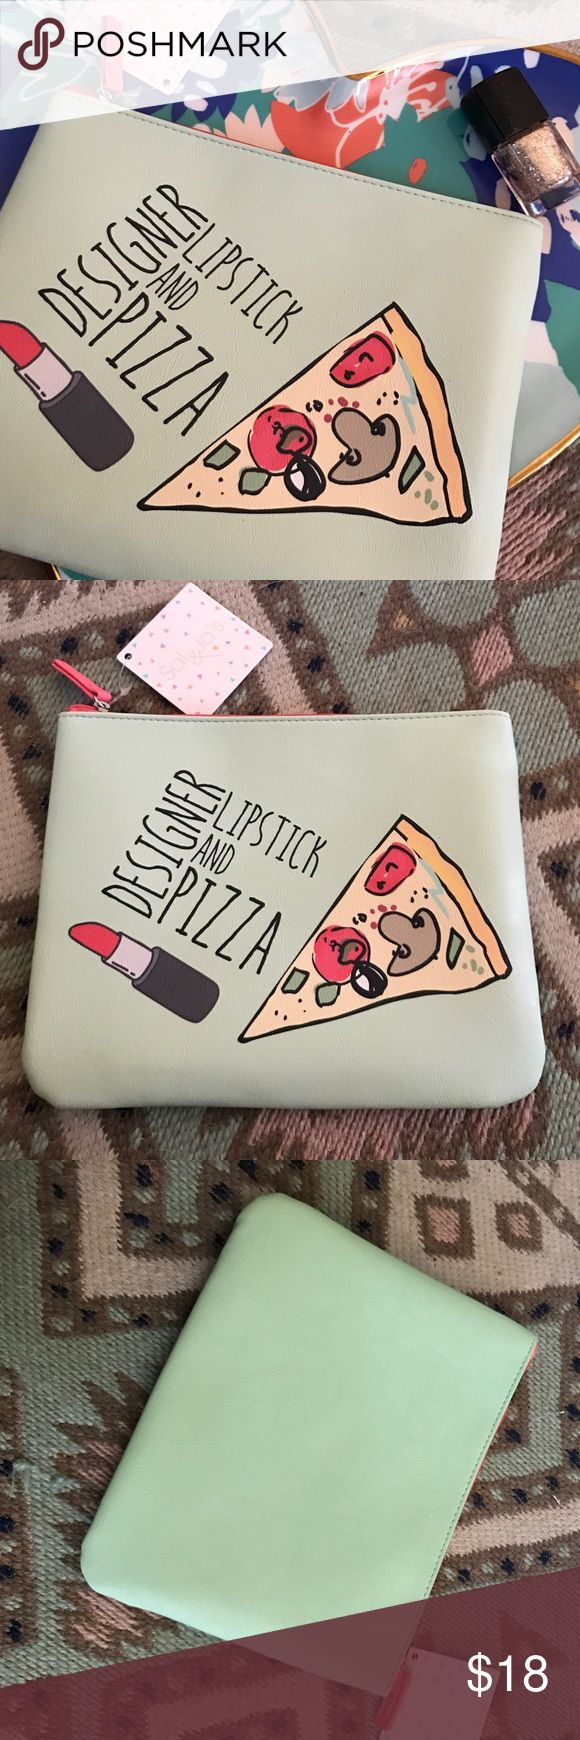 """""""DESIGNER LIPSTICK 💄 AND PIZZA 🍕"""" makeup bag New TRENDY """" DESIGNER LIPSTICK 💄 AND PIZZA 🍕"""" Makeup bag, with tags, 💝PERFECT GIFT FOR VALENTINE's DAY💕 RECEIVE 15% OFF when you BUNDLE 2 or more items.  MY CLOSET includes NEW and VINTAGE Vans, Nike, asics, Mostly NEW ITEMS some USED, WILL SHIP NEXT DAY. I accept reasonable offers Bags Cosmetic Bags & Cases"""